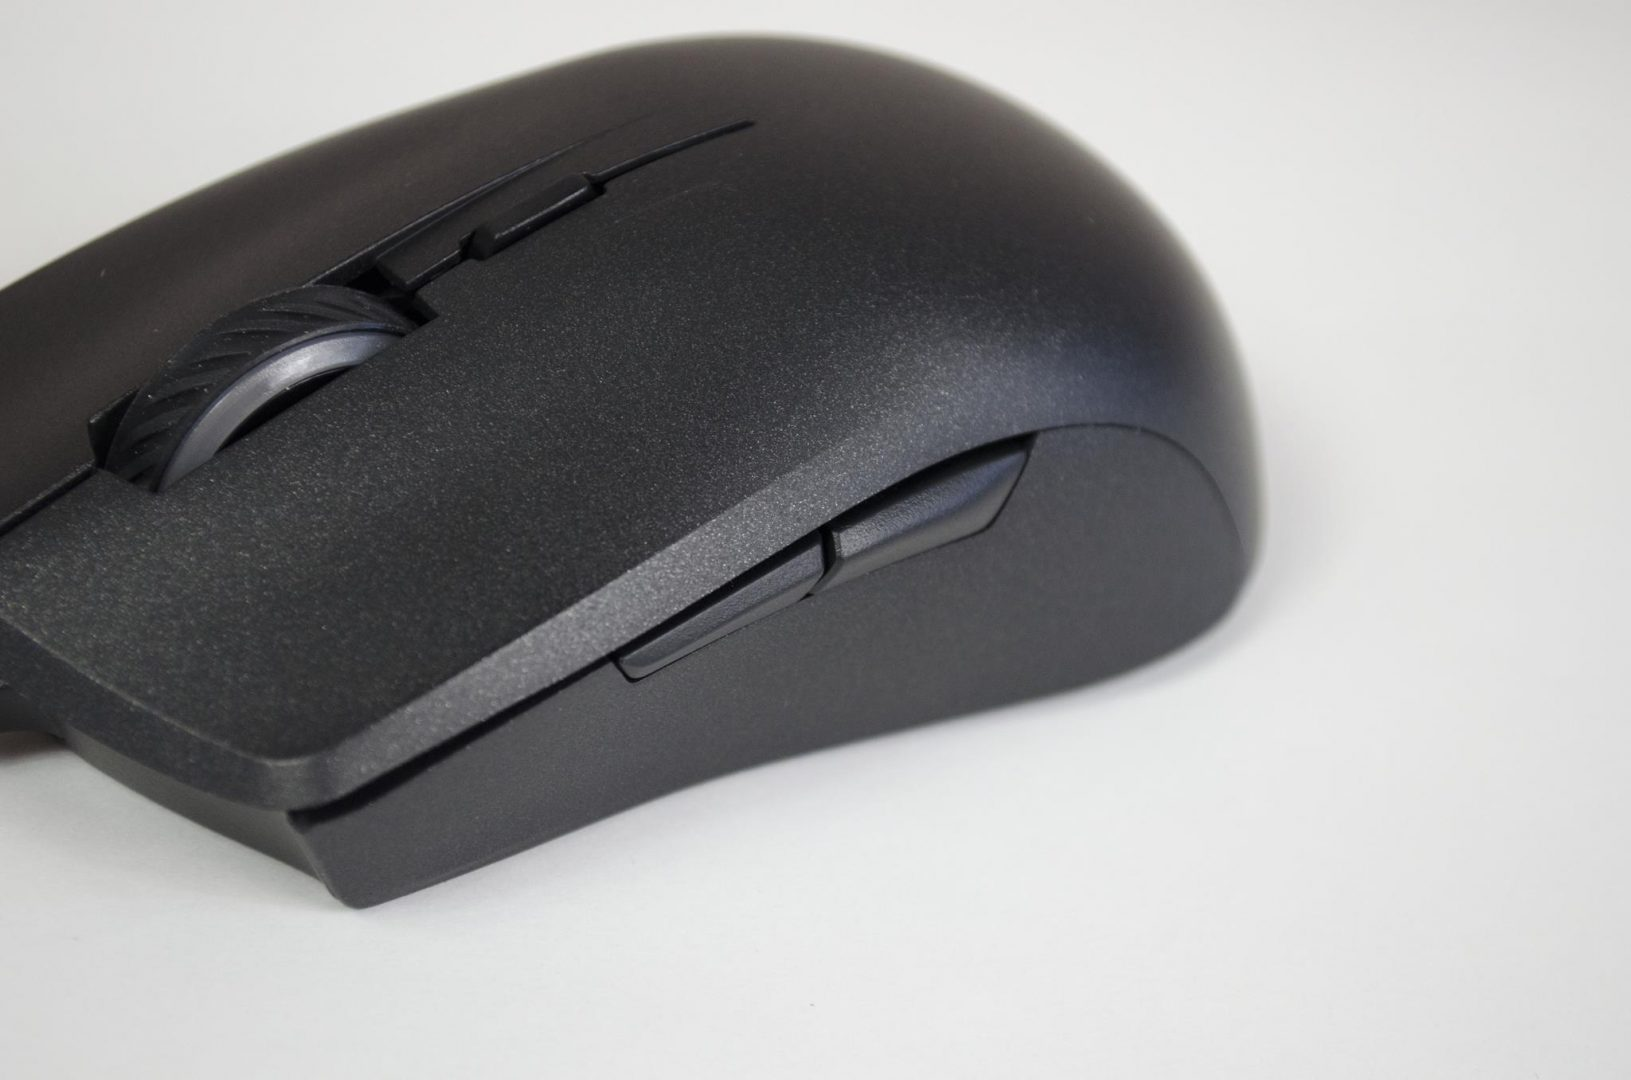 Cooler Master MasterMouse s Review_6